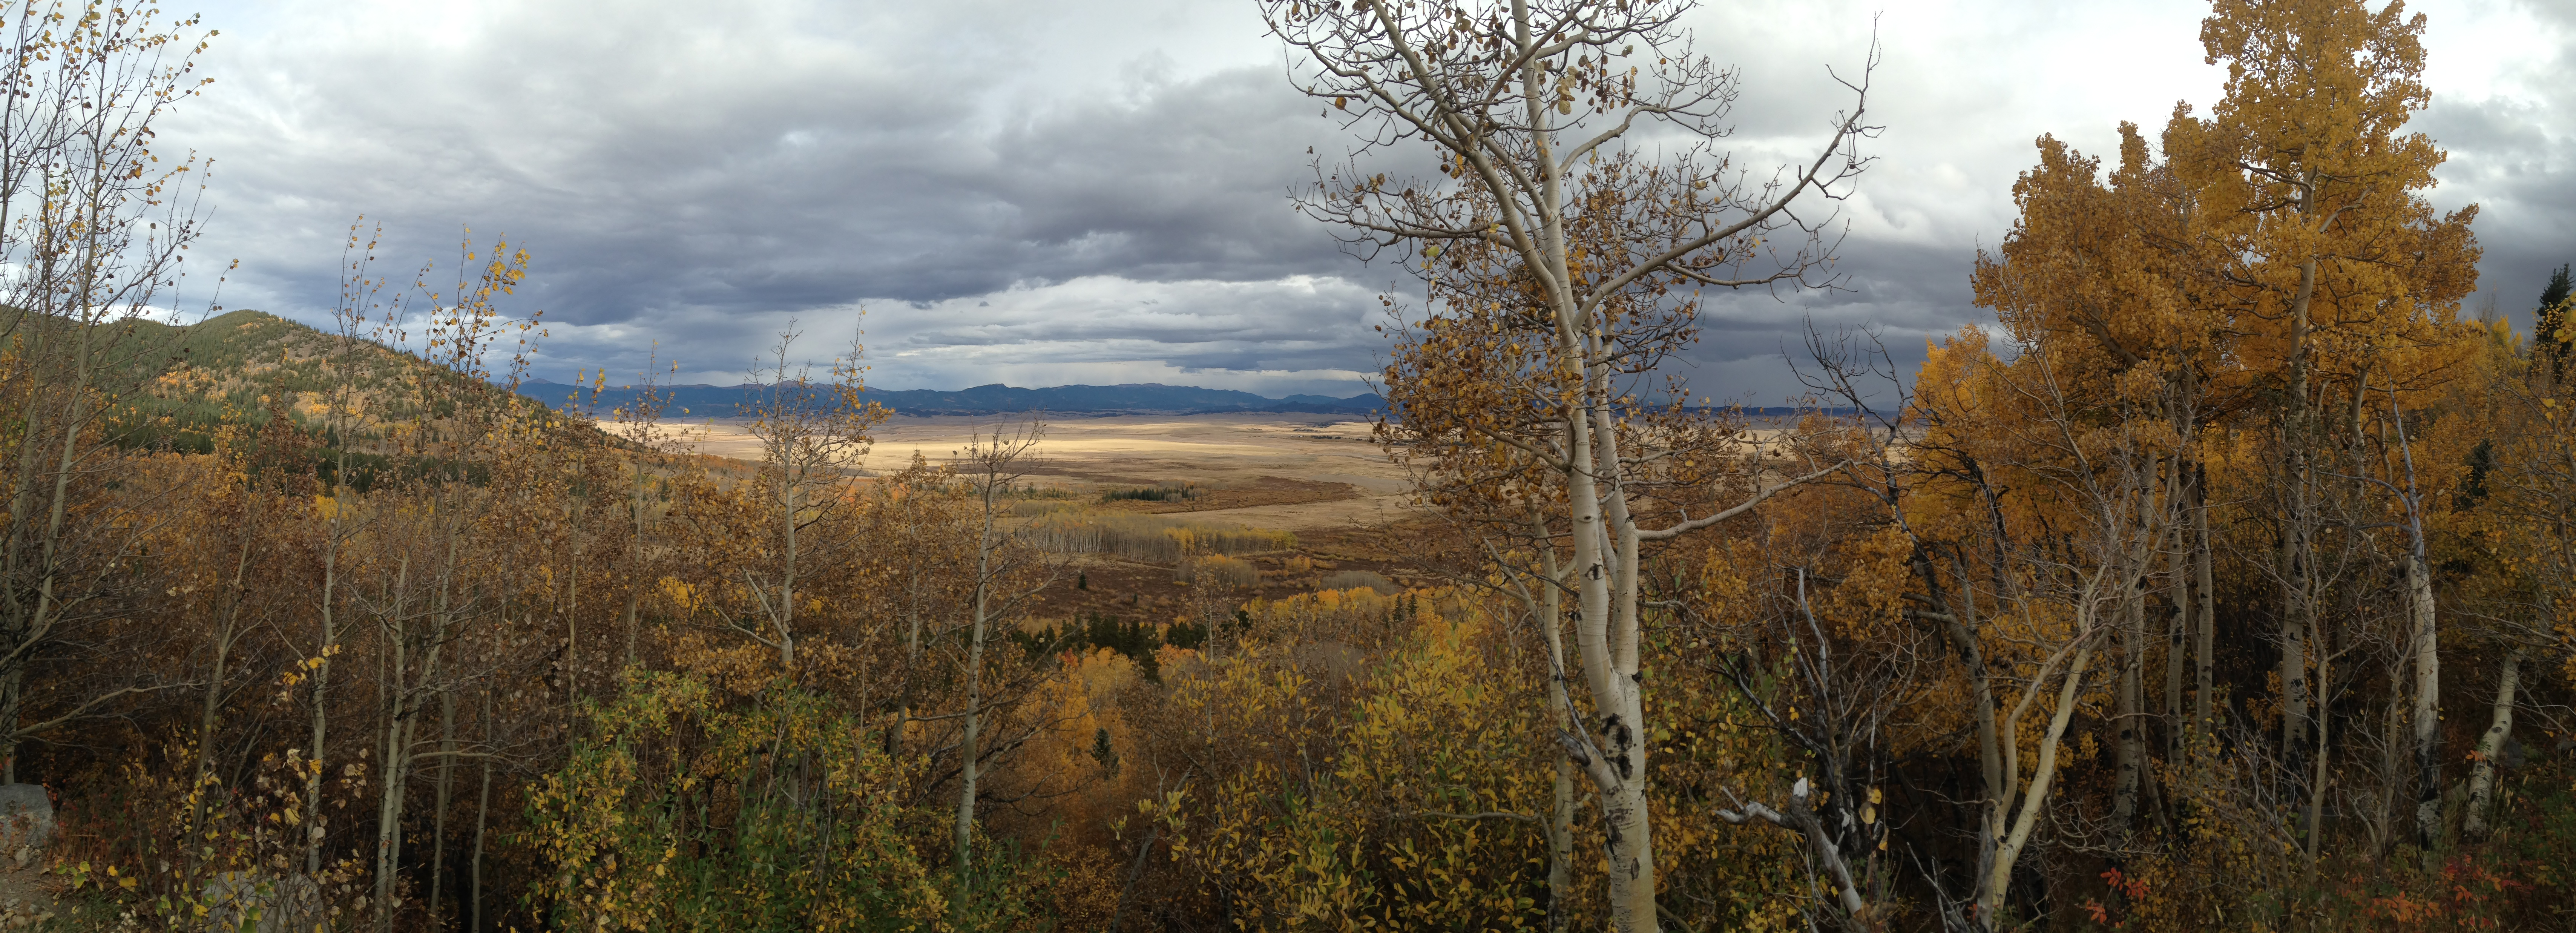 South Park from Boreas Pass, fall color